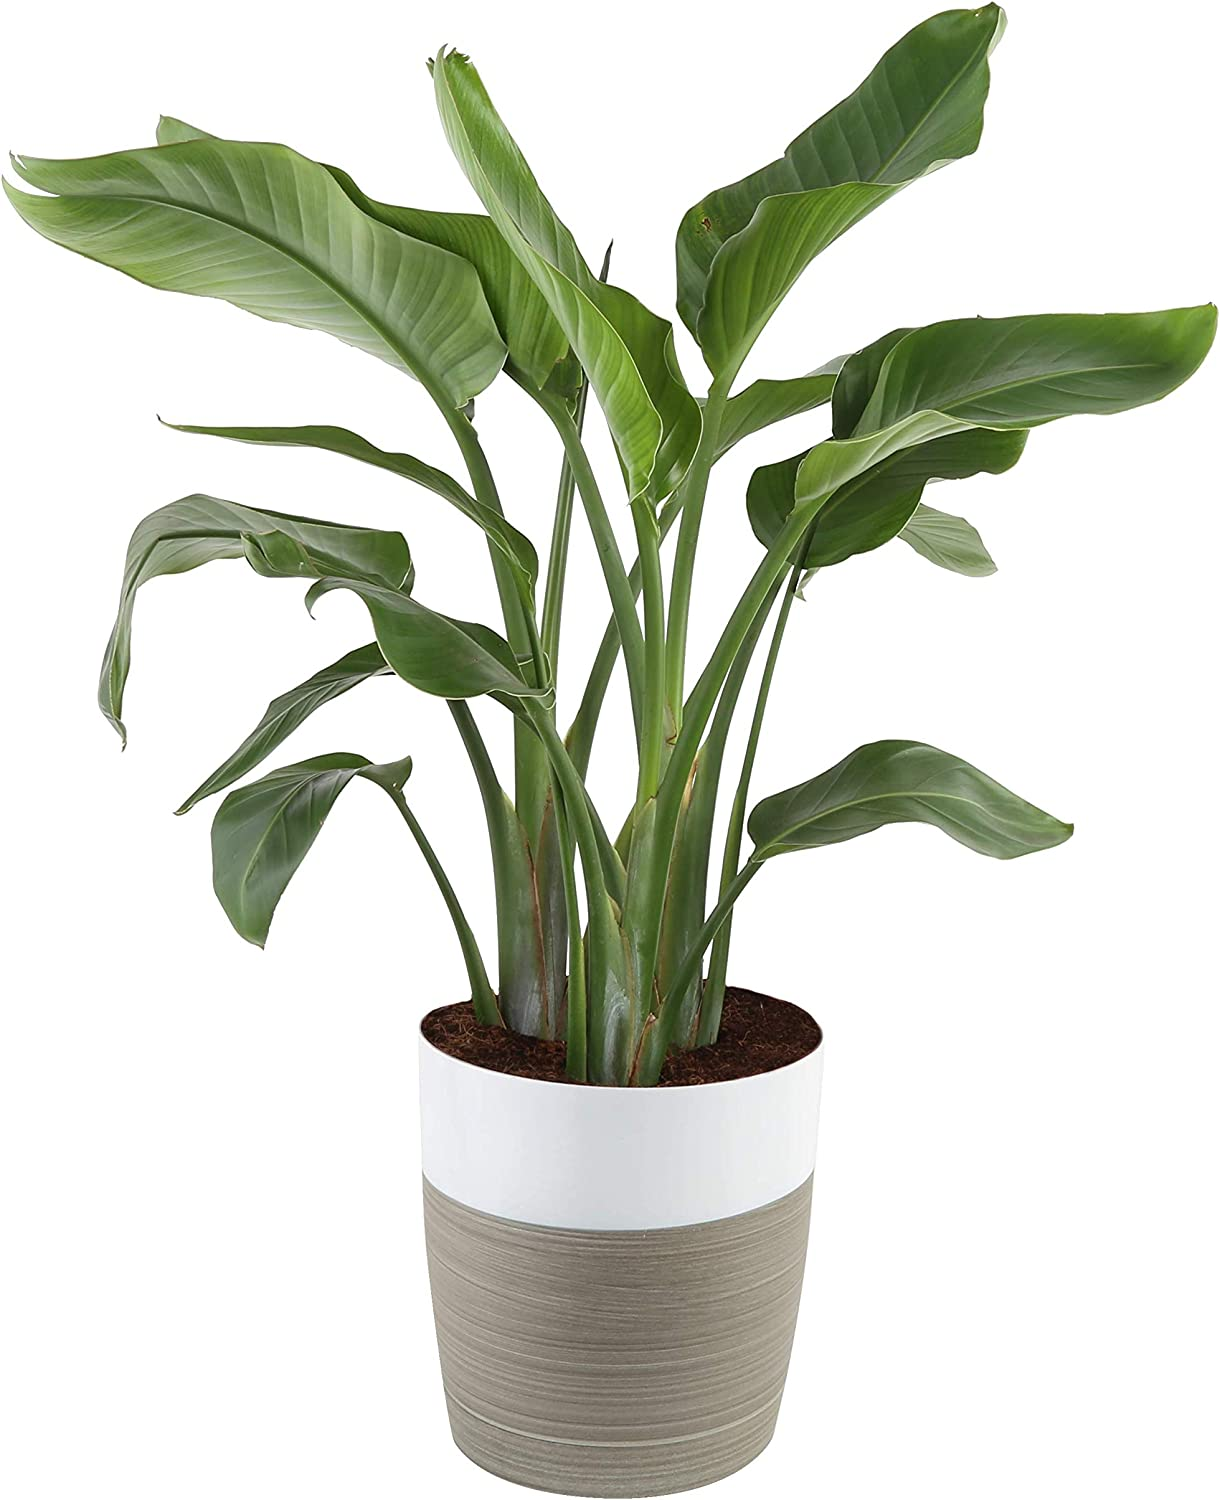 Costa Farms White Bird of Paradise Strelitzia nicolai, Indoor Plant in Décor Planter, 3 to 4-Feet Tall, Fresh from Our Farm